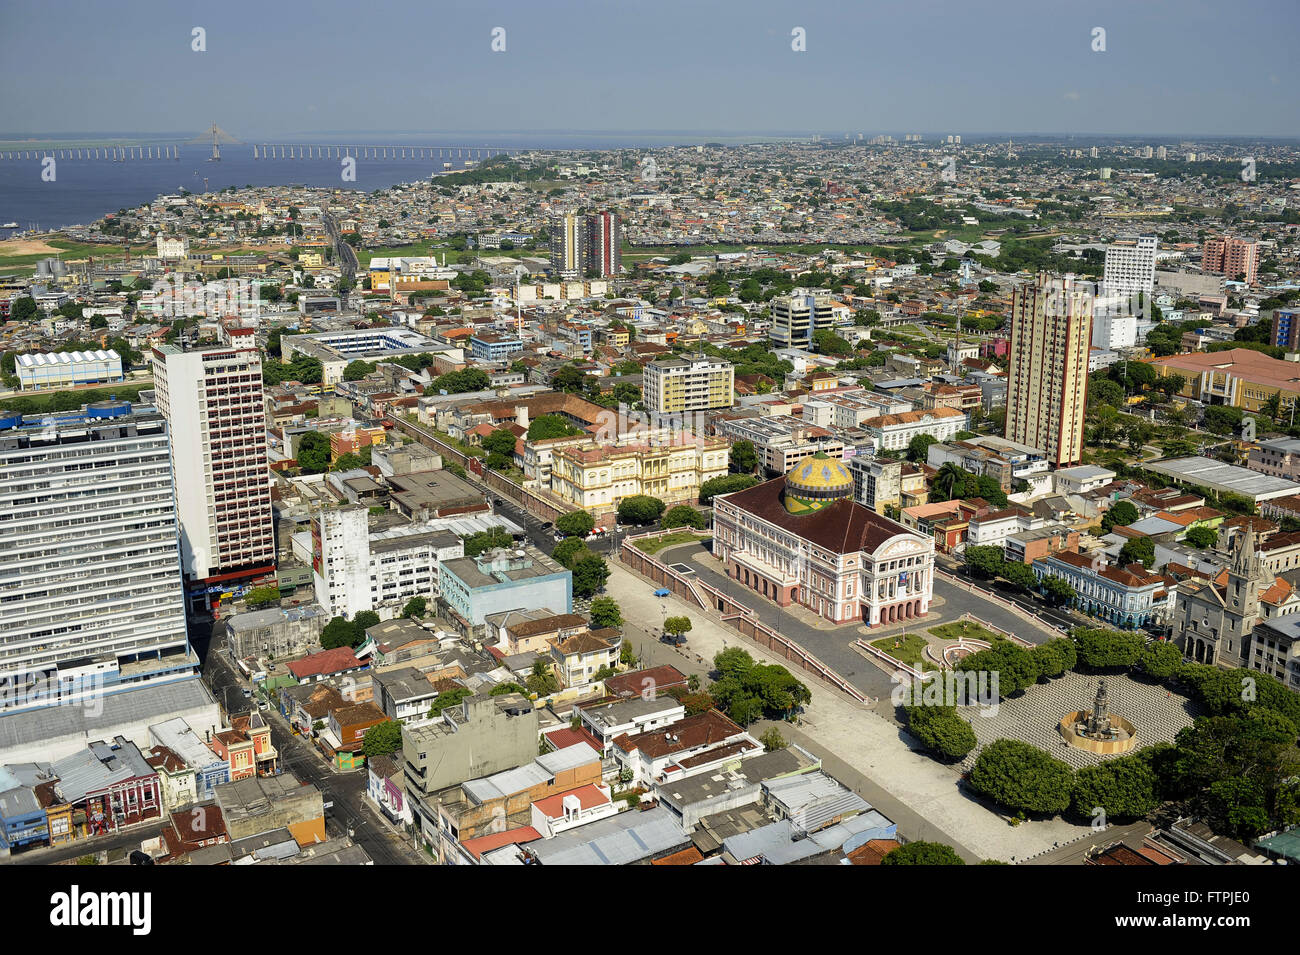 Aerial view of the Amazon Theater - built in 1896 during the rubber boom and the city of Manaus - Stock Image